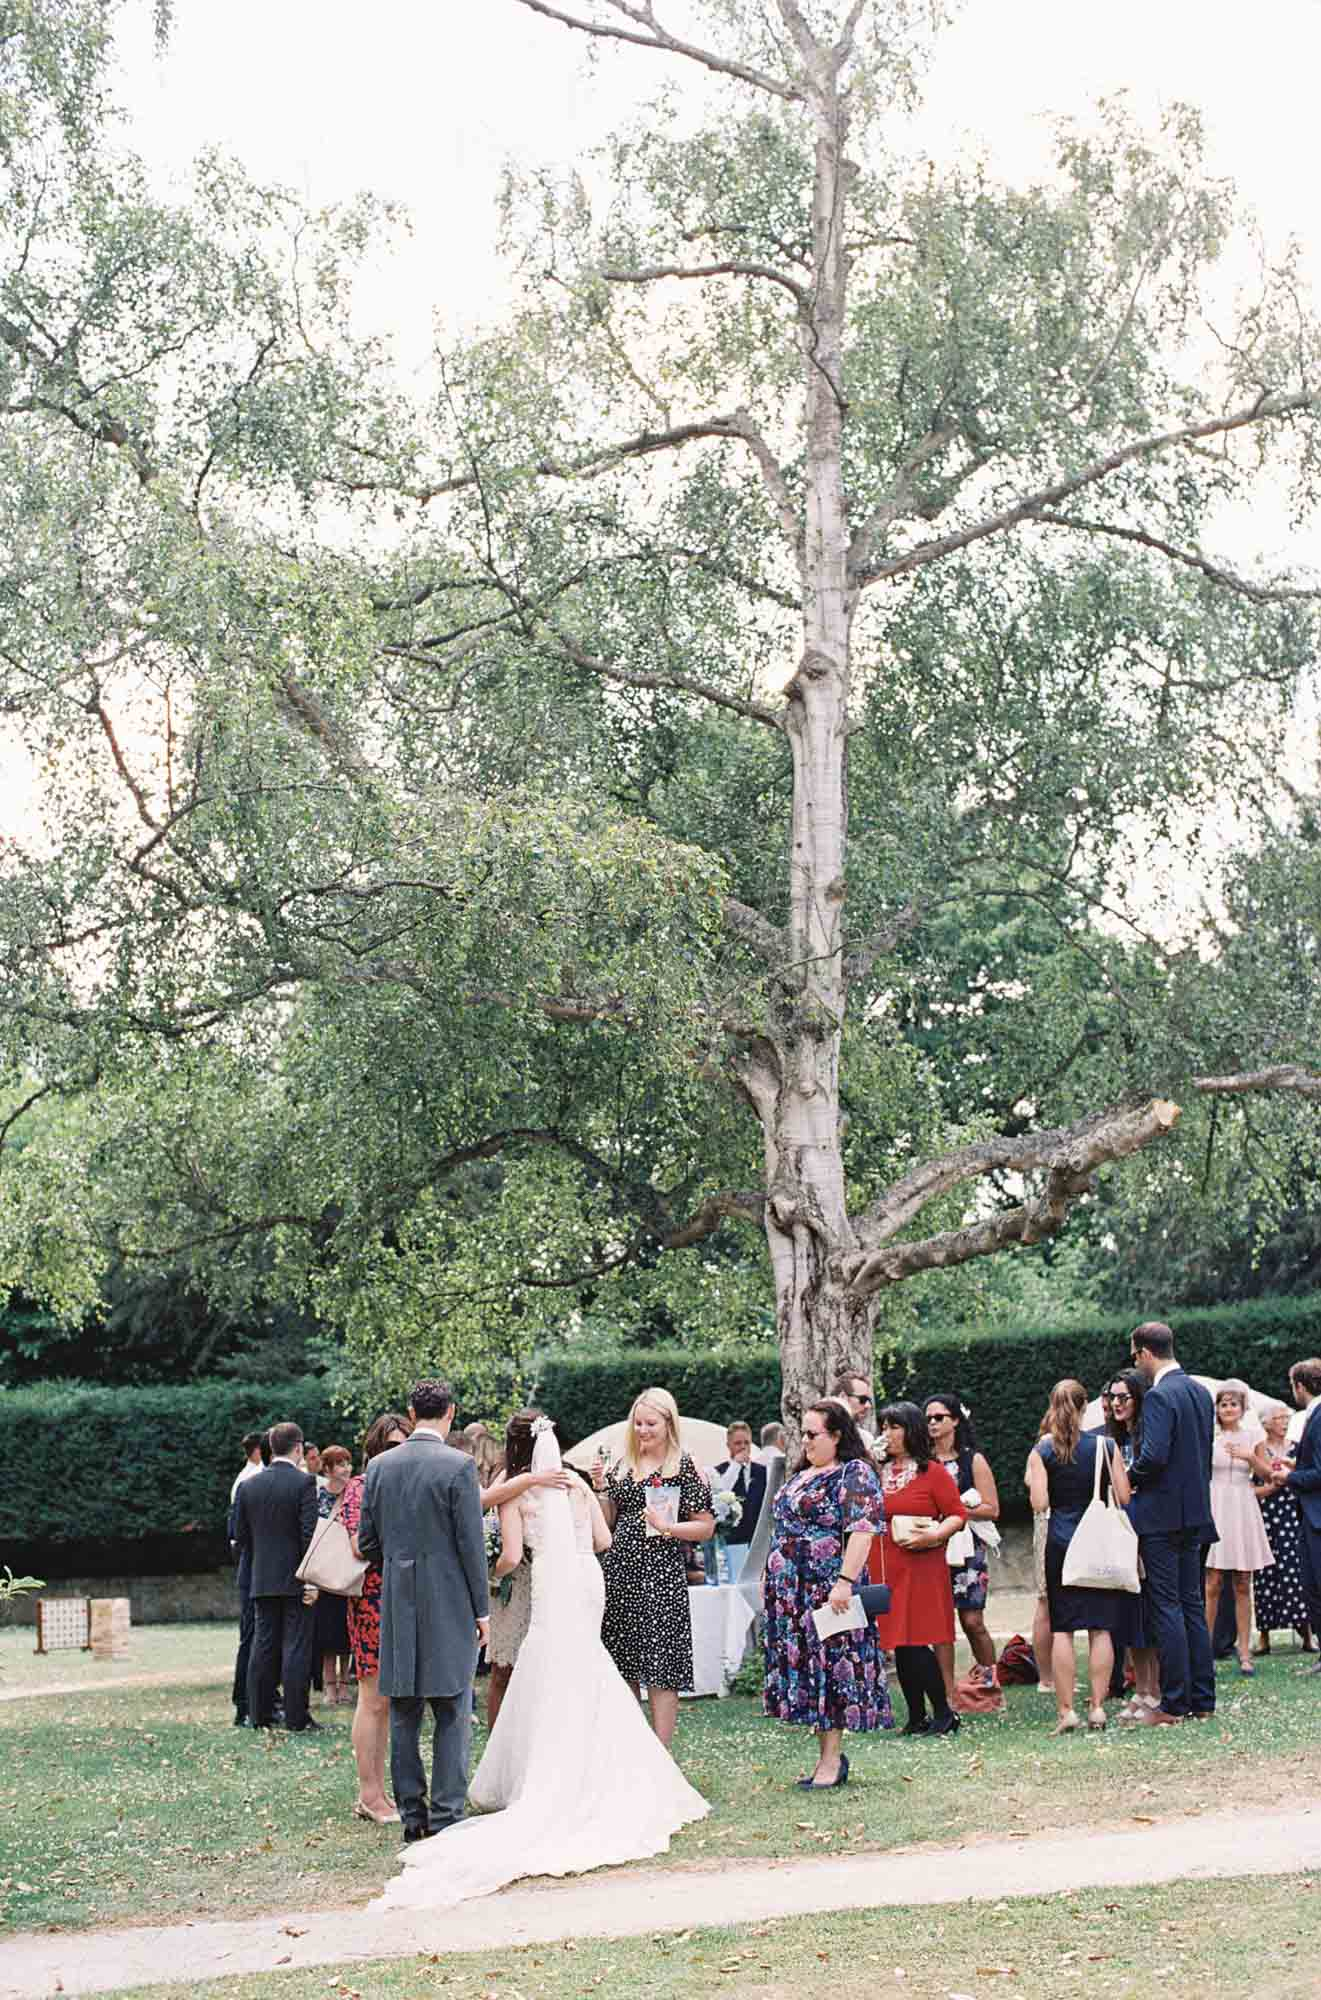 Guests hugging bride under large tree at Chiddingstone Castle wedding